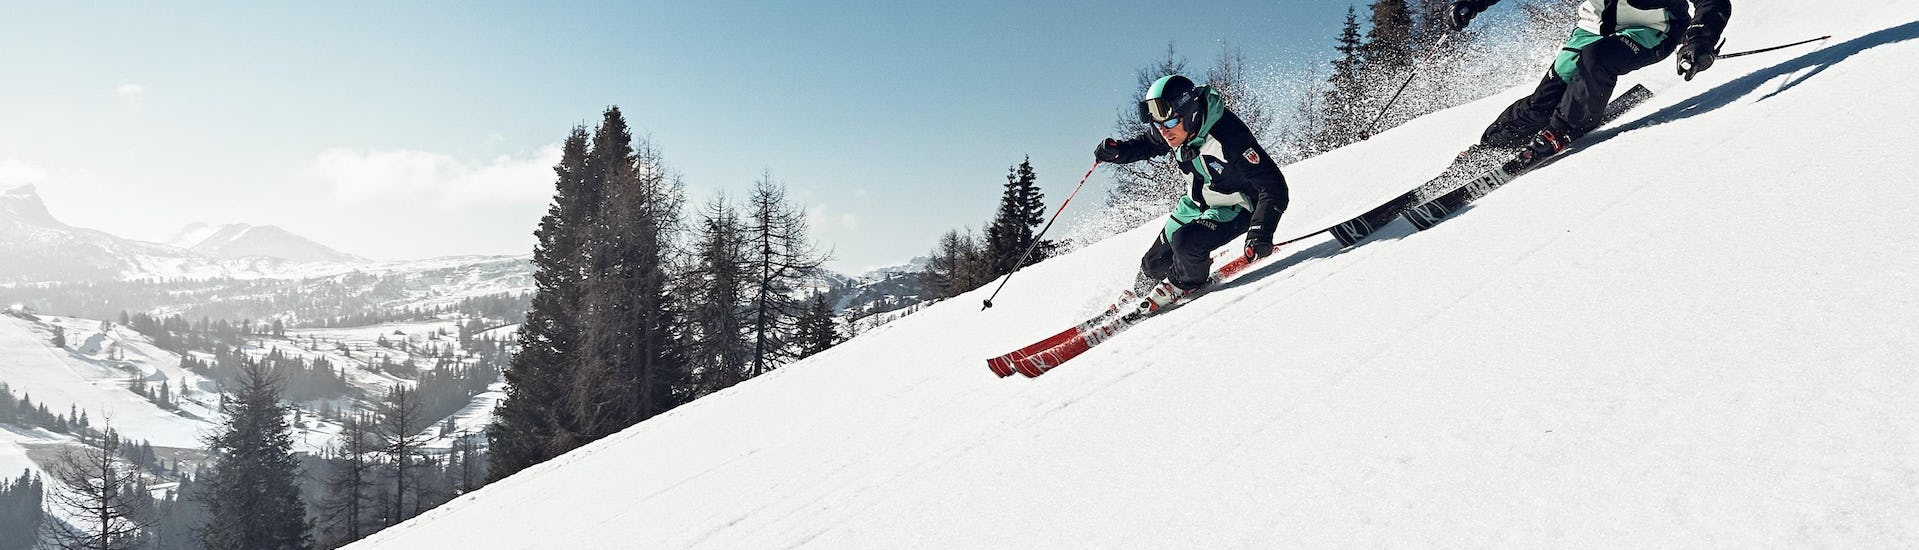 Ski Instructor Private for Adults - Holidays - All Levels